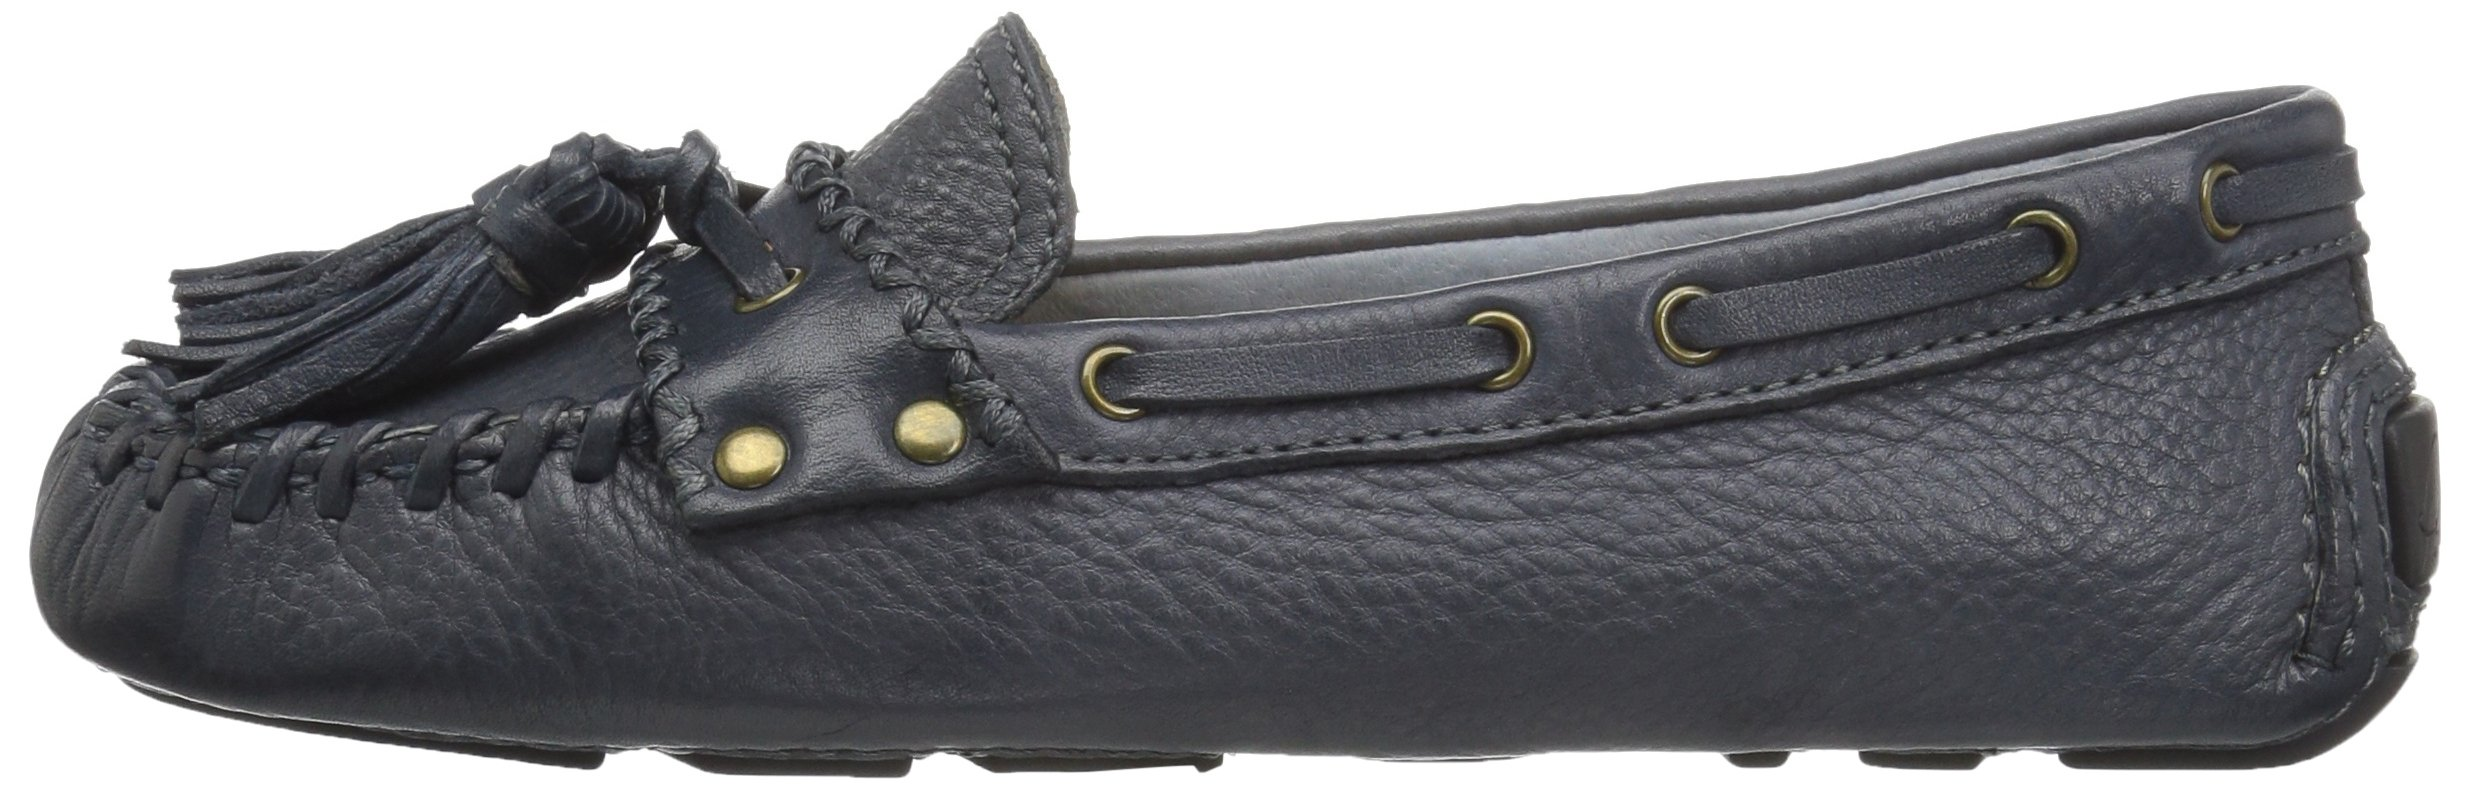 Patricia Nash Women's Domenica Driving Style Loafer, Oxford Blue, 37 B US by Patricia Nash (Image #5)